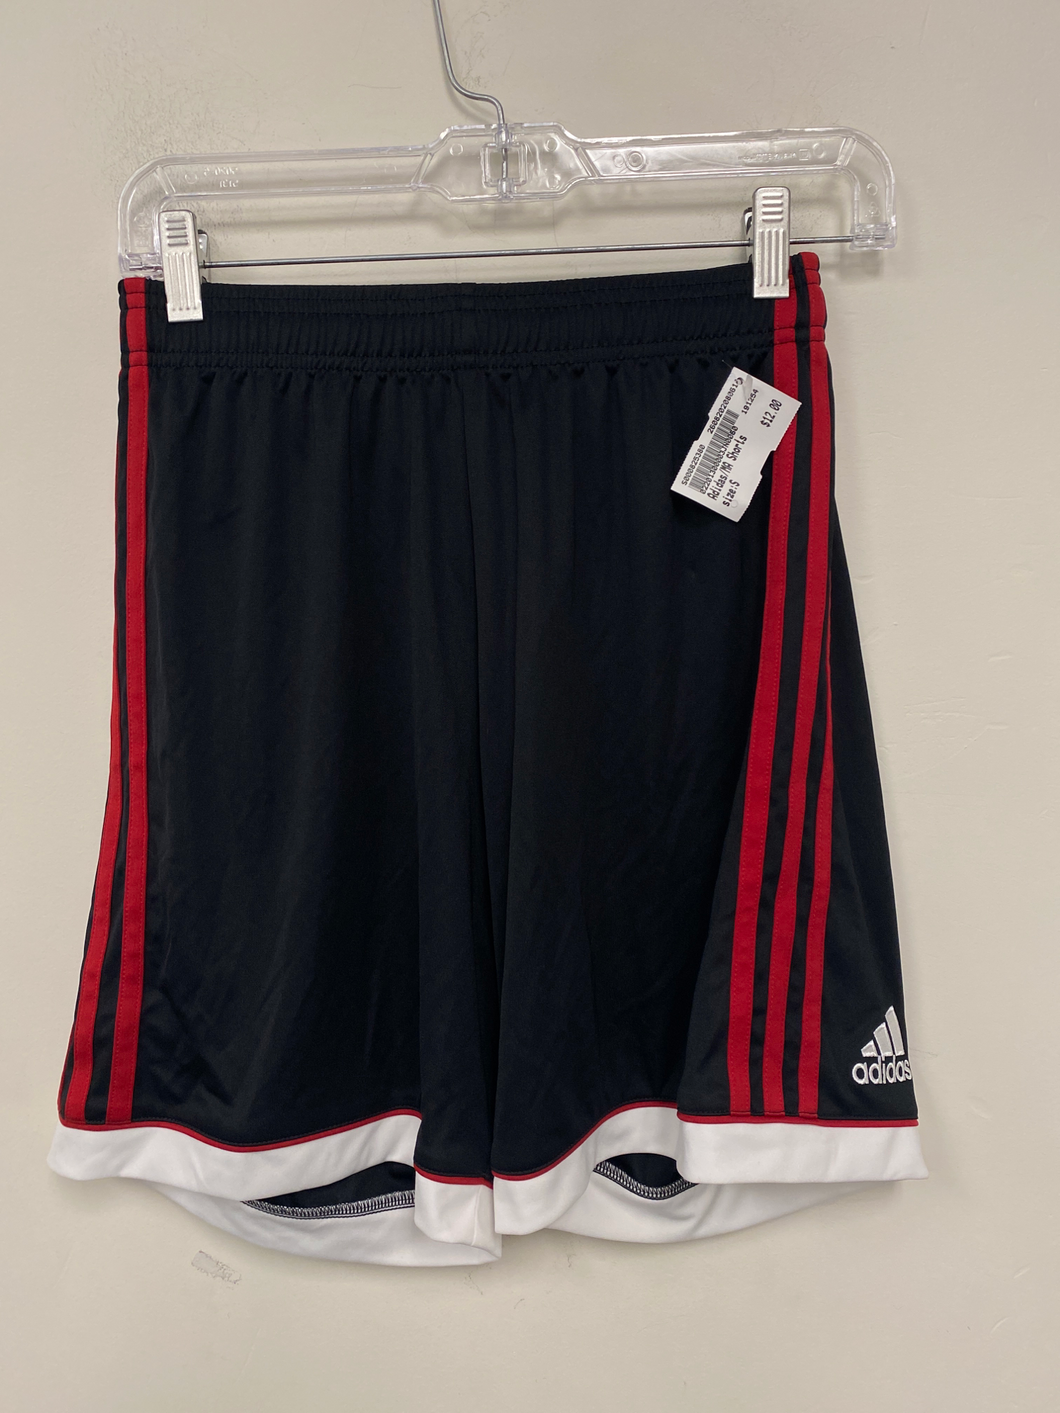 Men's Adidas Athletic Shorts Size Small